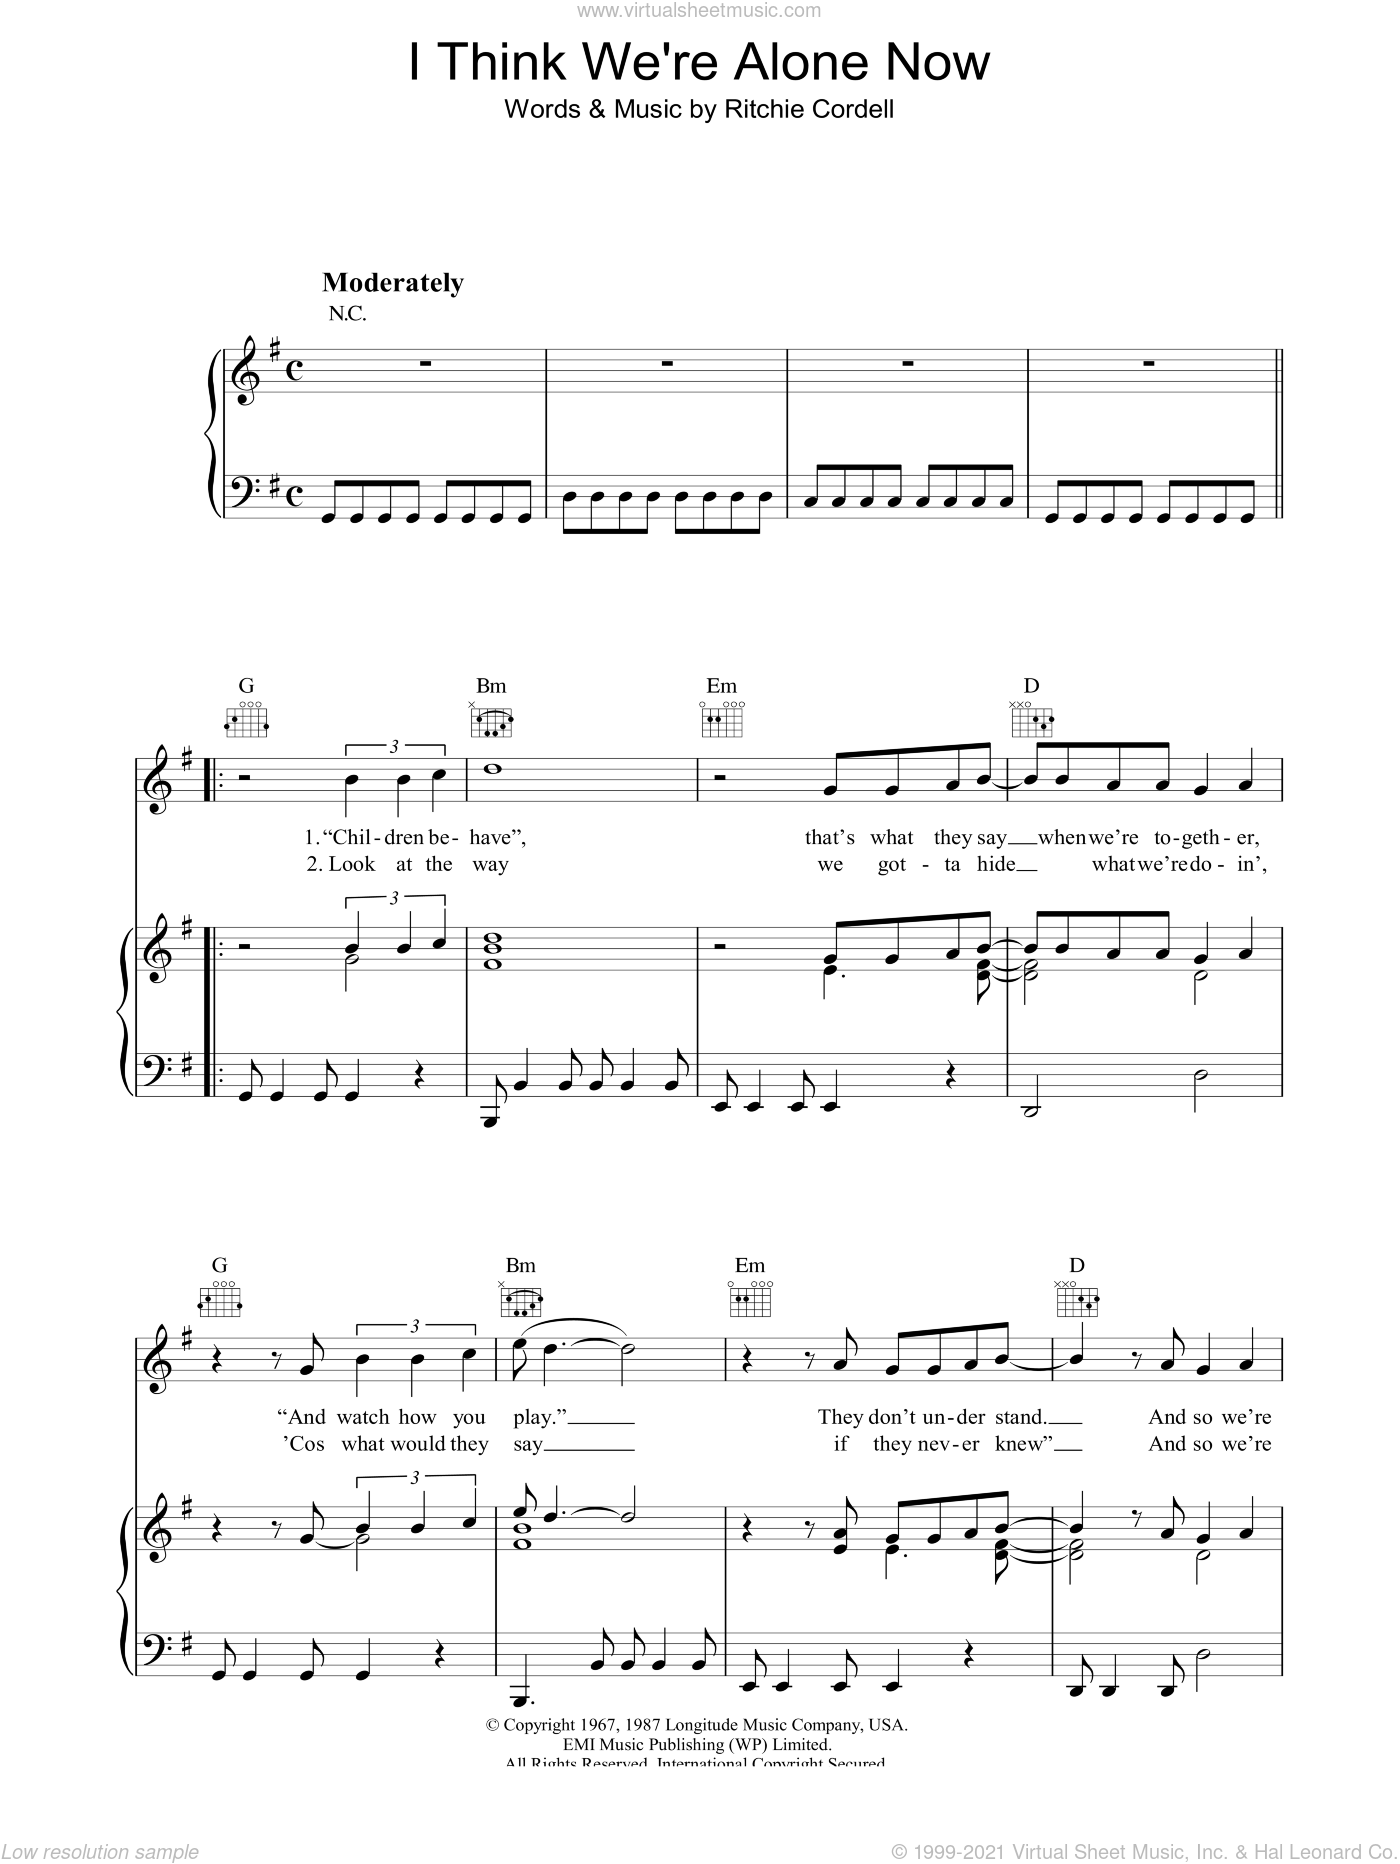 I Think We're Alone Now sheet music for voice, piano or guitar by Ritchie Cordell. Score Image Preview.